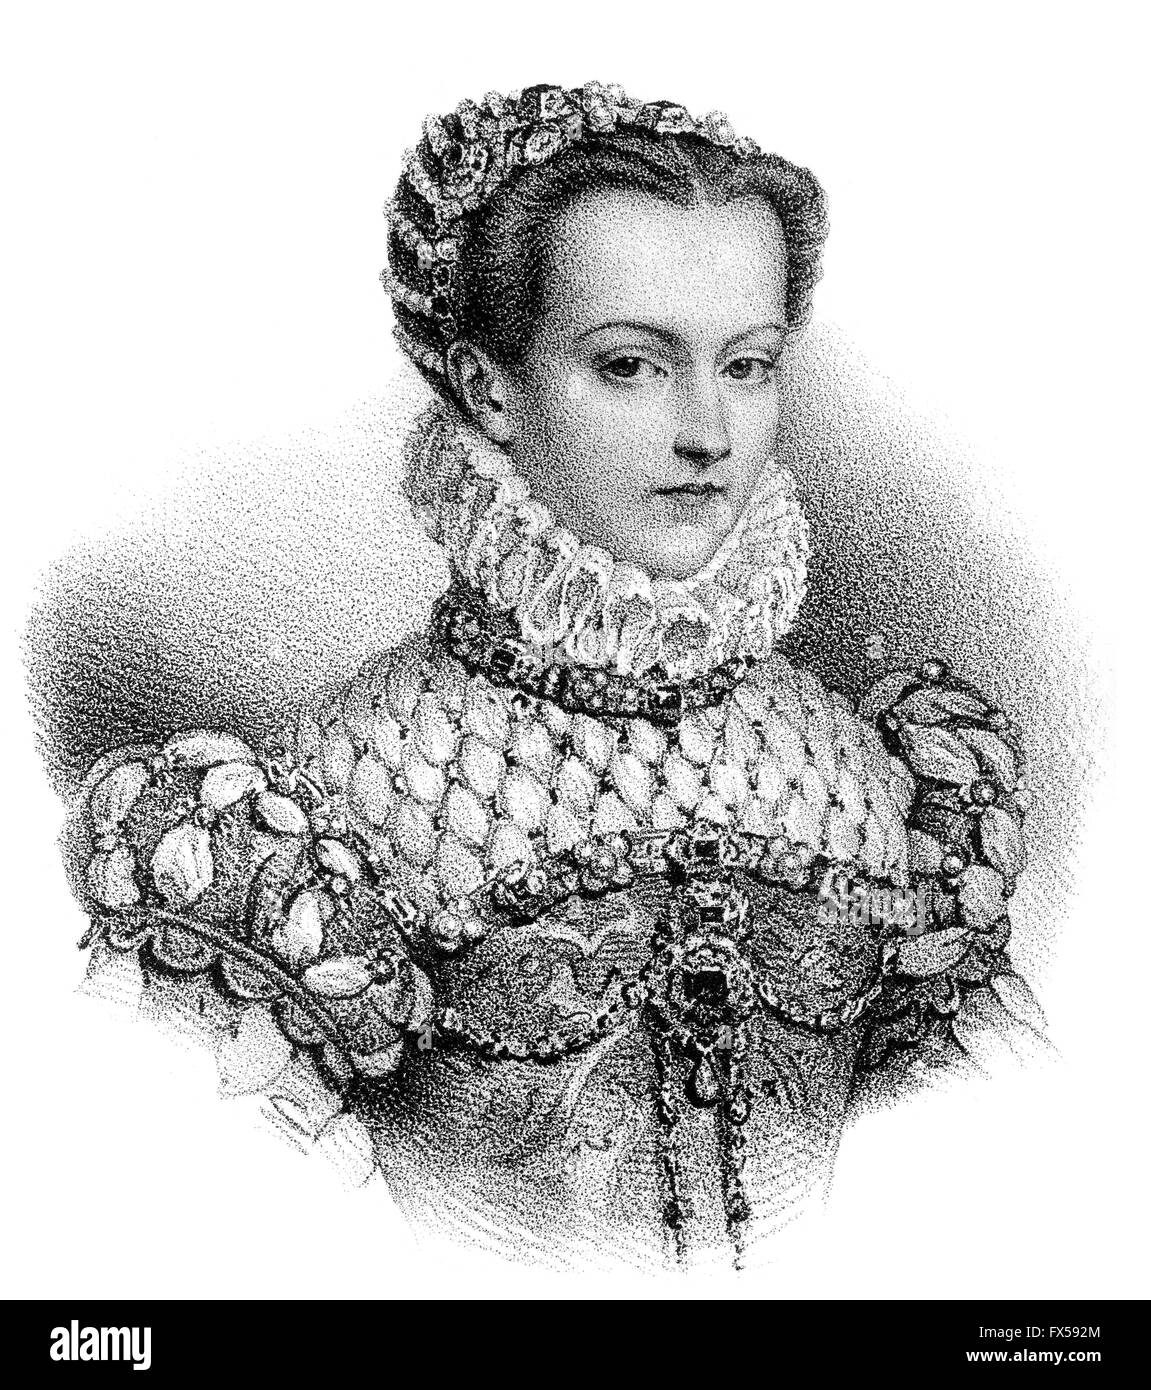 Elisabeth of Austria, 1554-1592, Queen of France as the wife of King Charles IX - Stock Image